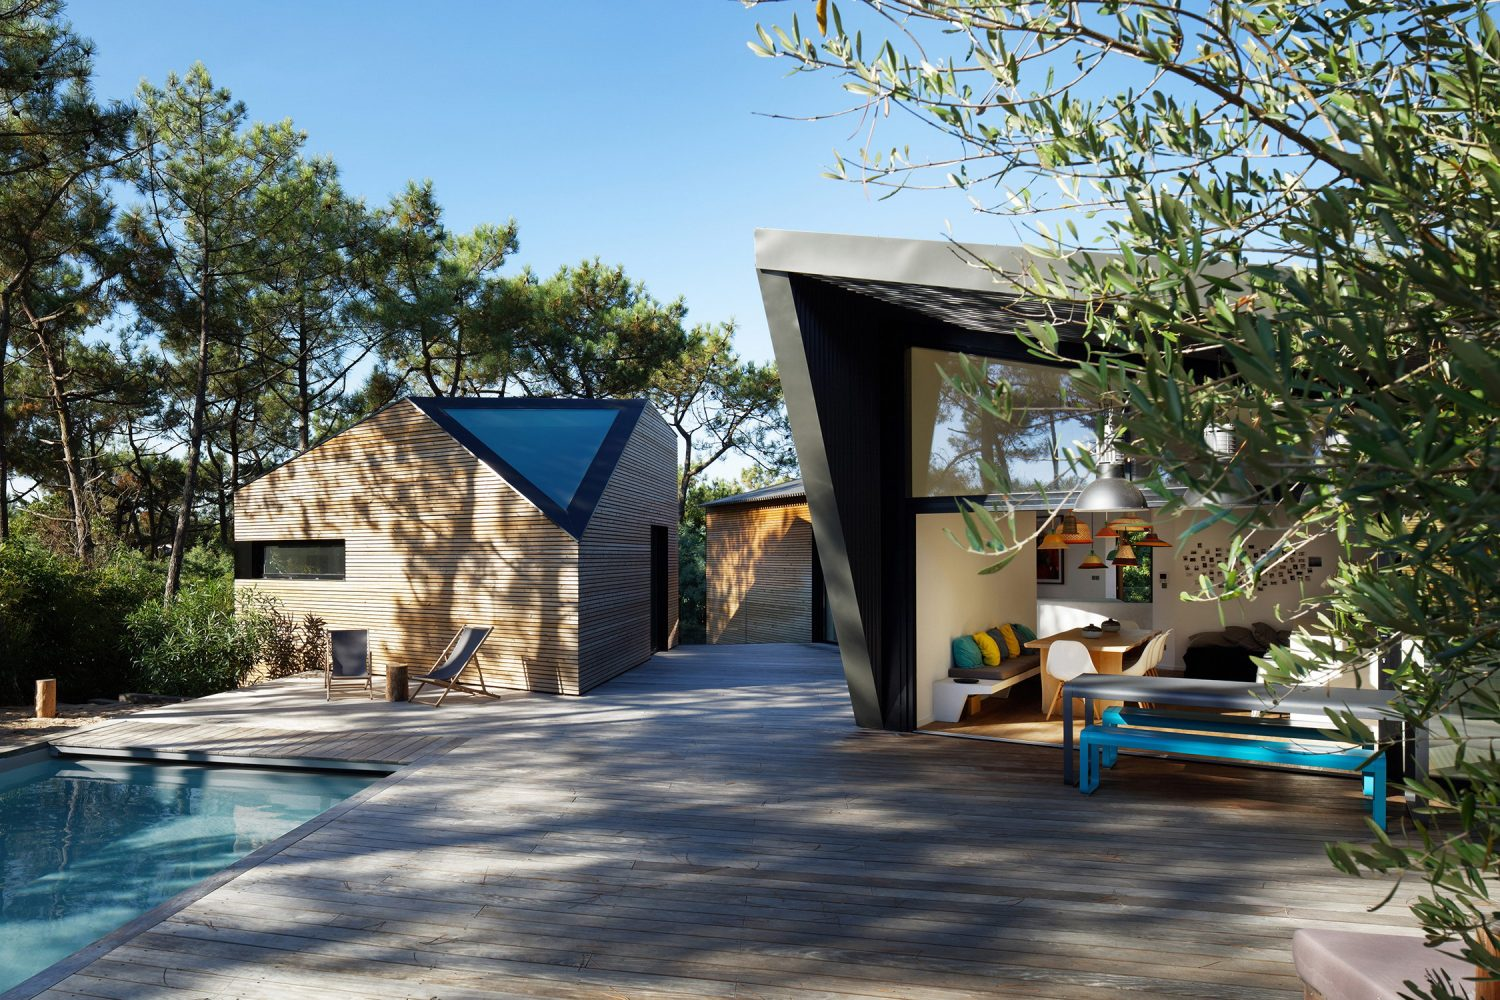 Holiday House with Swimming Pool by Atelier du Pont